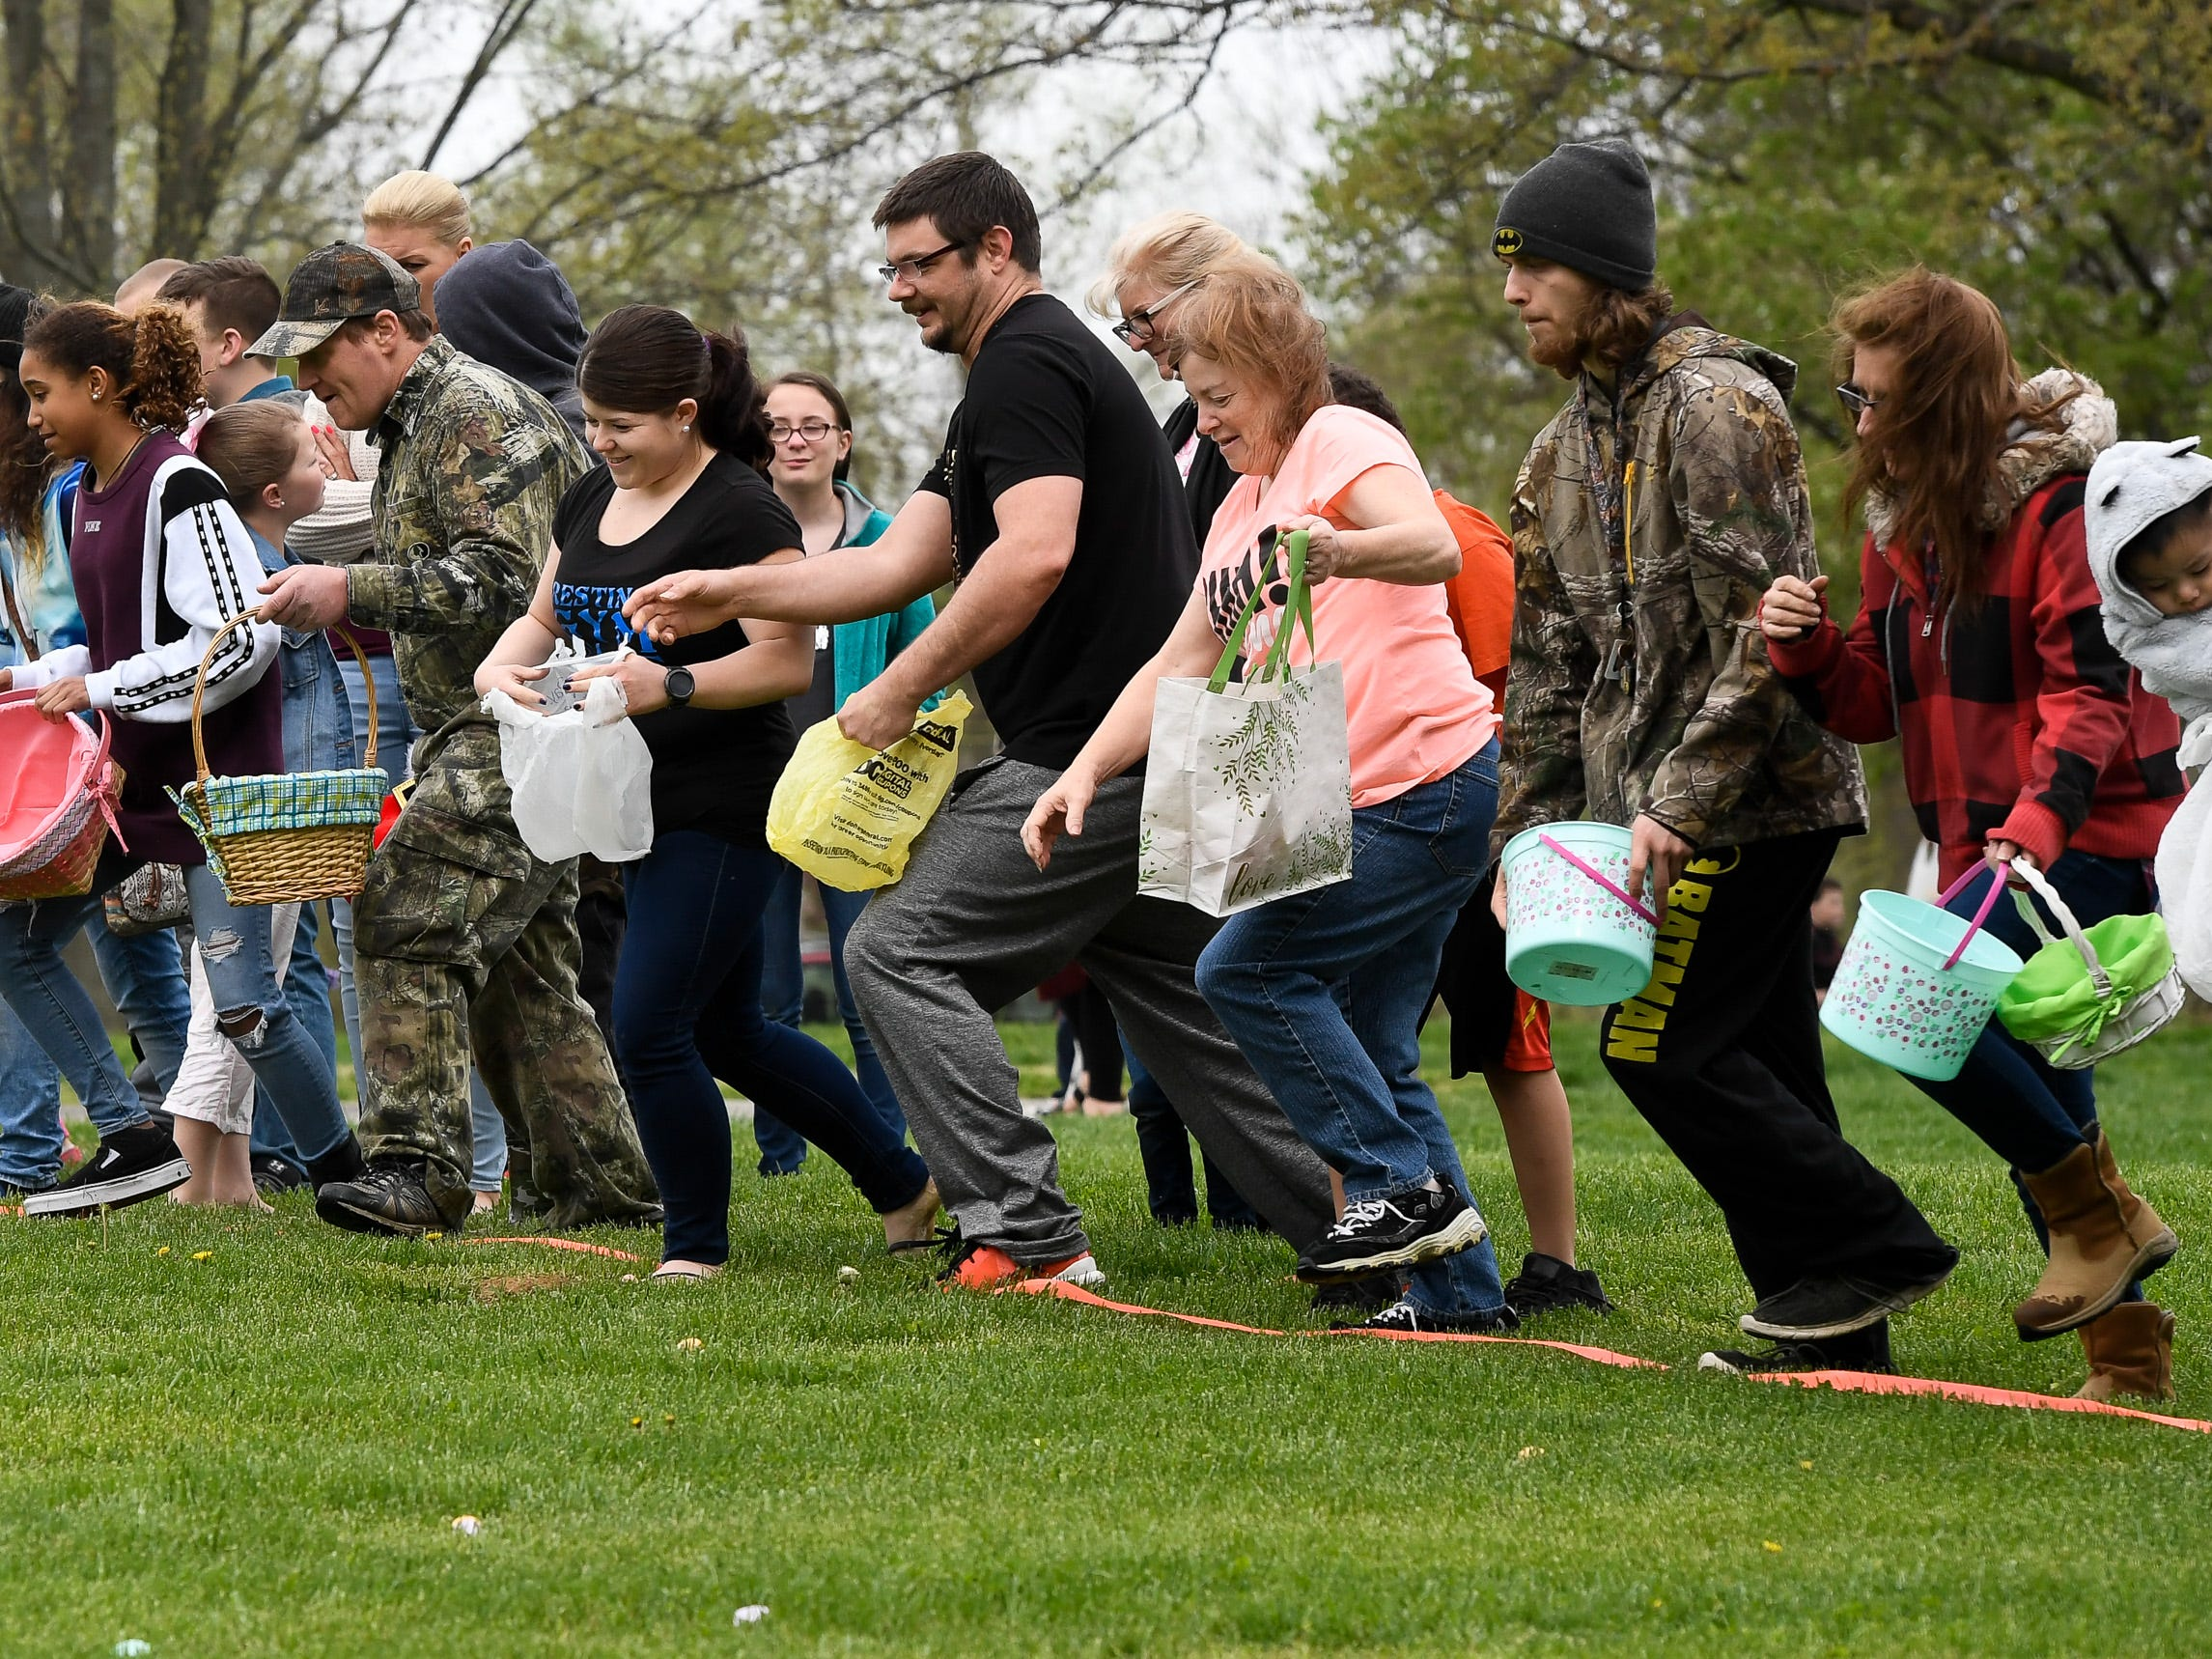 Start of the adult egg hunt at the City of Henderson Parks and Recreation Department's annual Easter Egg Hunt Saturday, April 13, 2019.